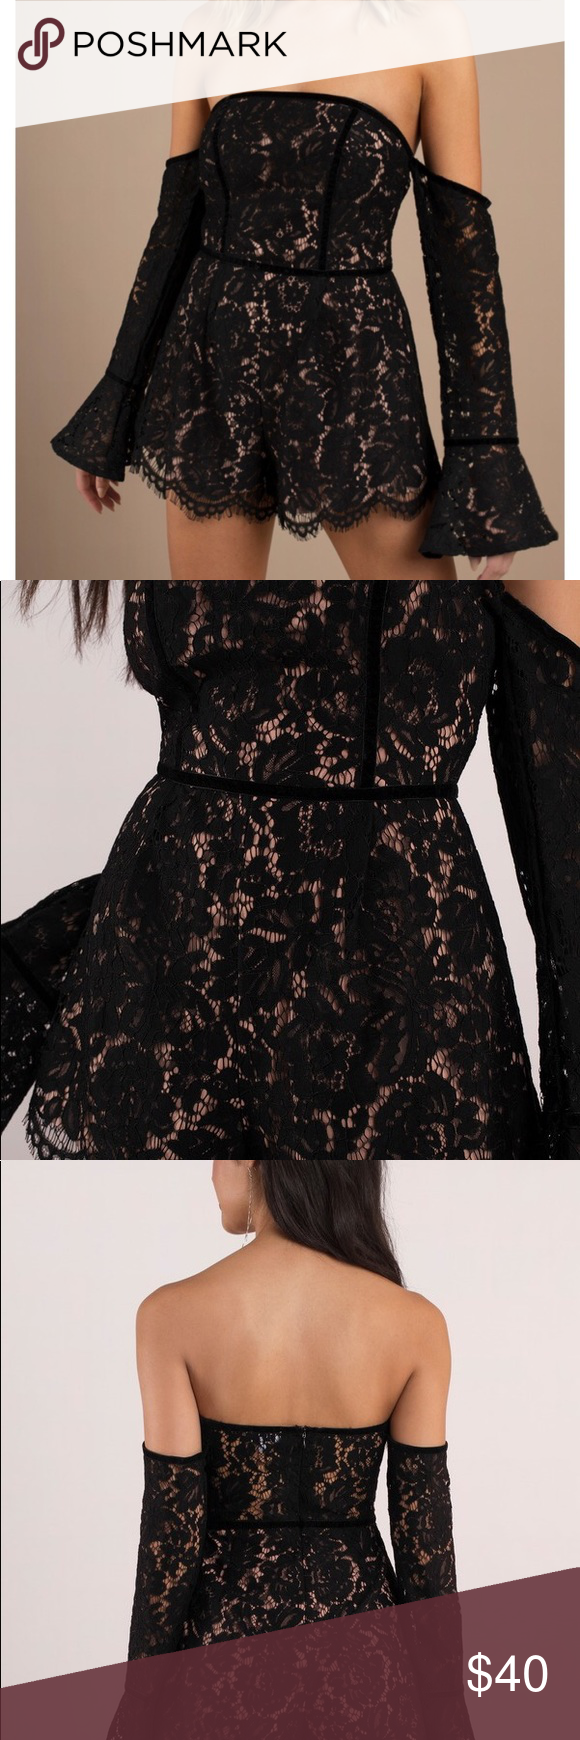 Angelica Bell Nude tobi angelica black lace romper black and nude lace romper